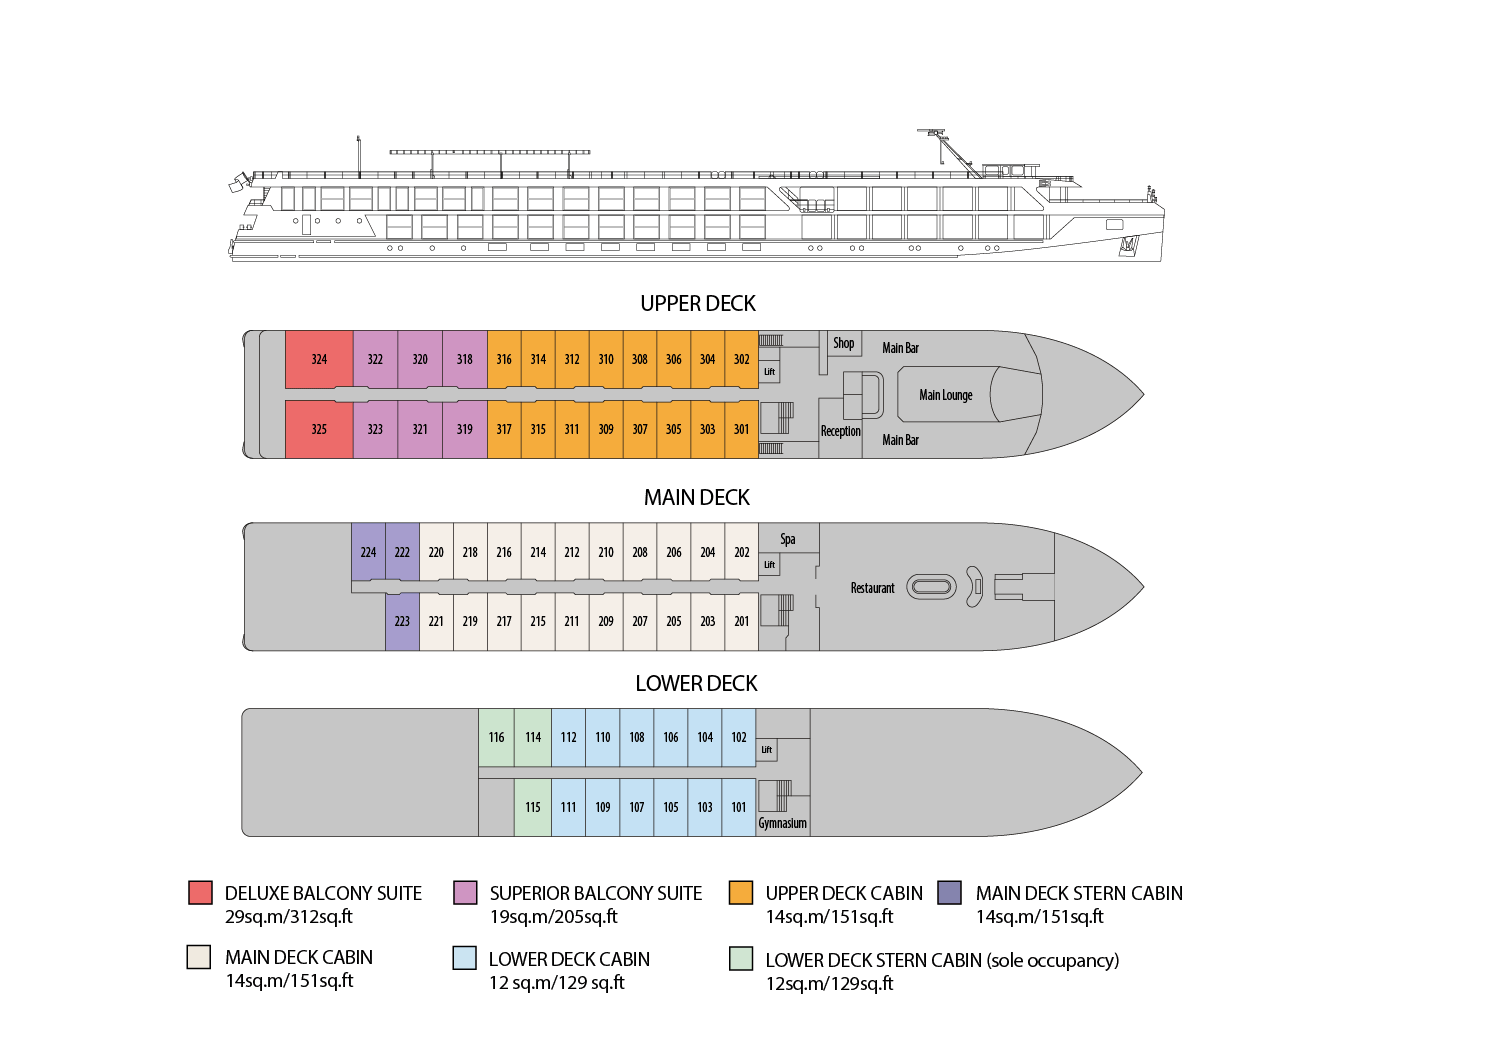 Riviera Travel - Douro Splendour - Deck Plan